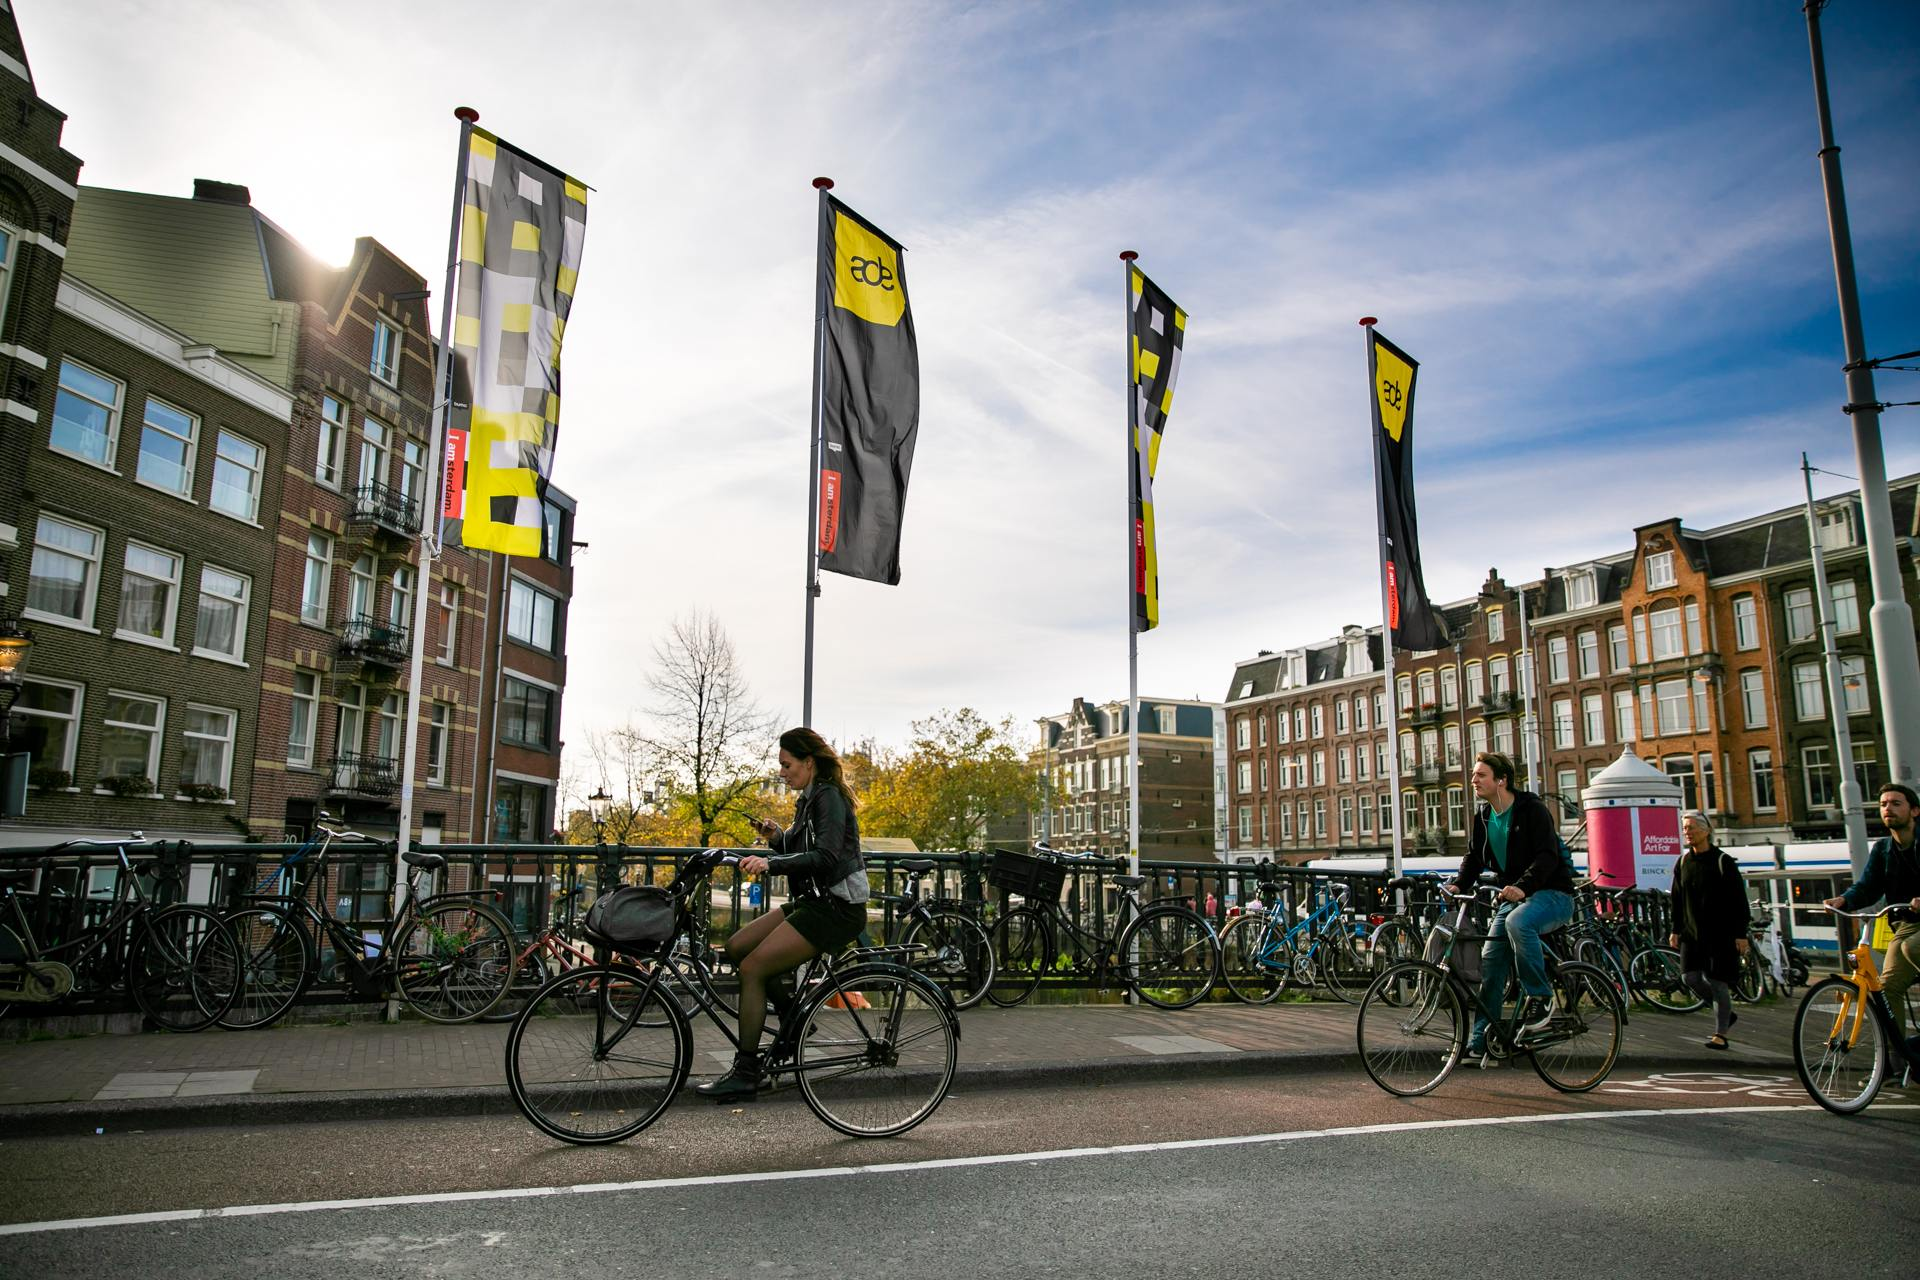 Amsterdam itself is one of the best reasons to go to Amsterdam Dance Event. It's an incredible city with a great scene.